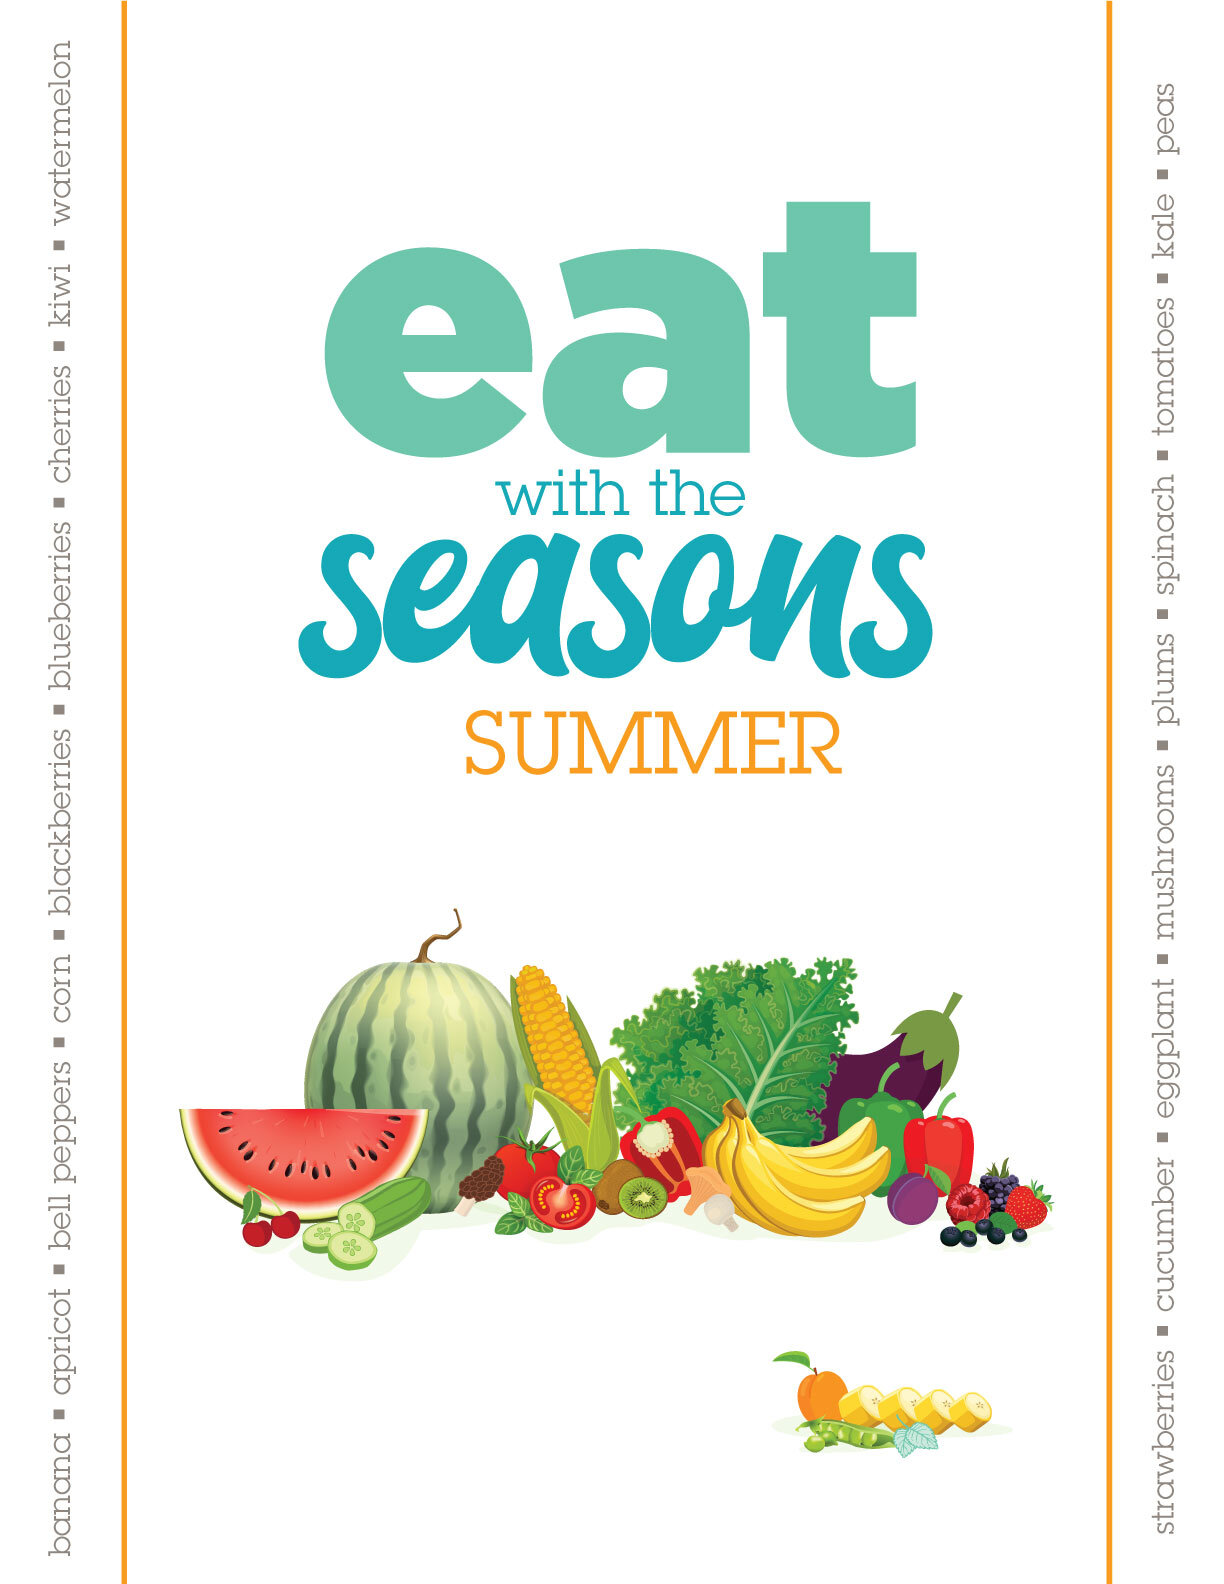 Eat-with-the-Seasons-Summer-infographic.jpg